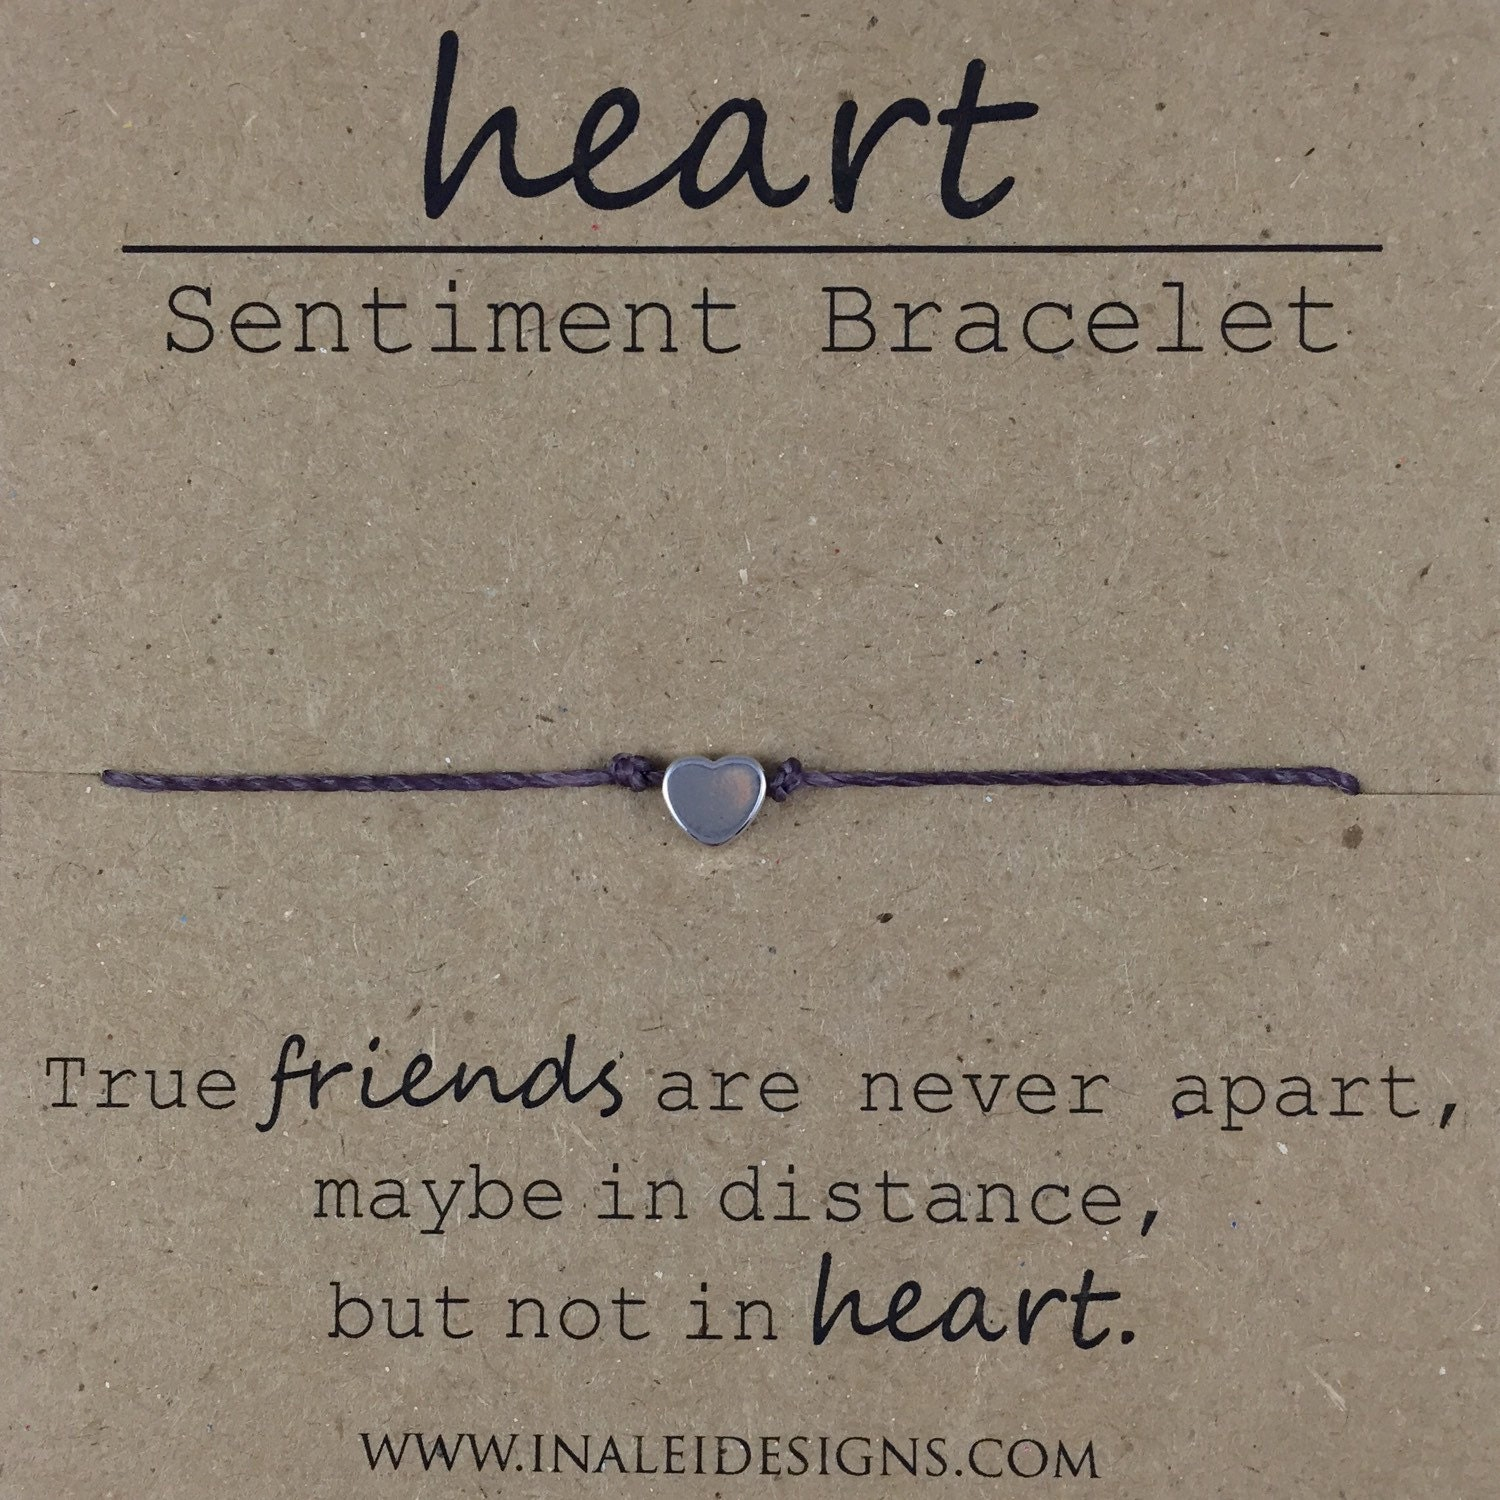 best friend bracelet heart friendship bead bracelet dainty bead bracelet true friend bracelet best friend gift friend moving away gift sentimental gift